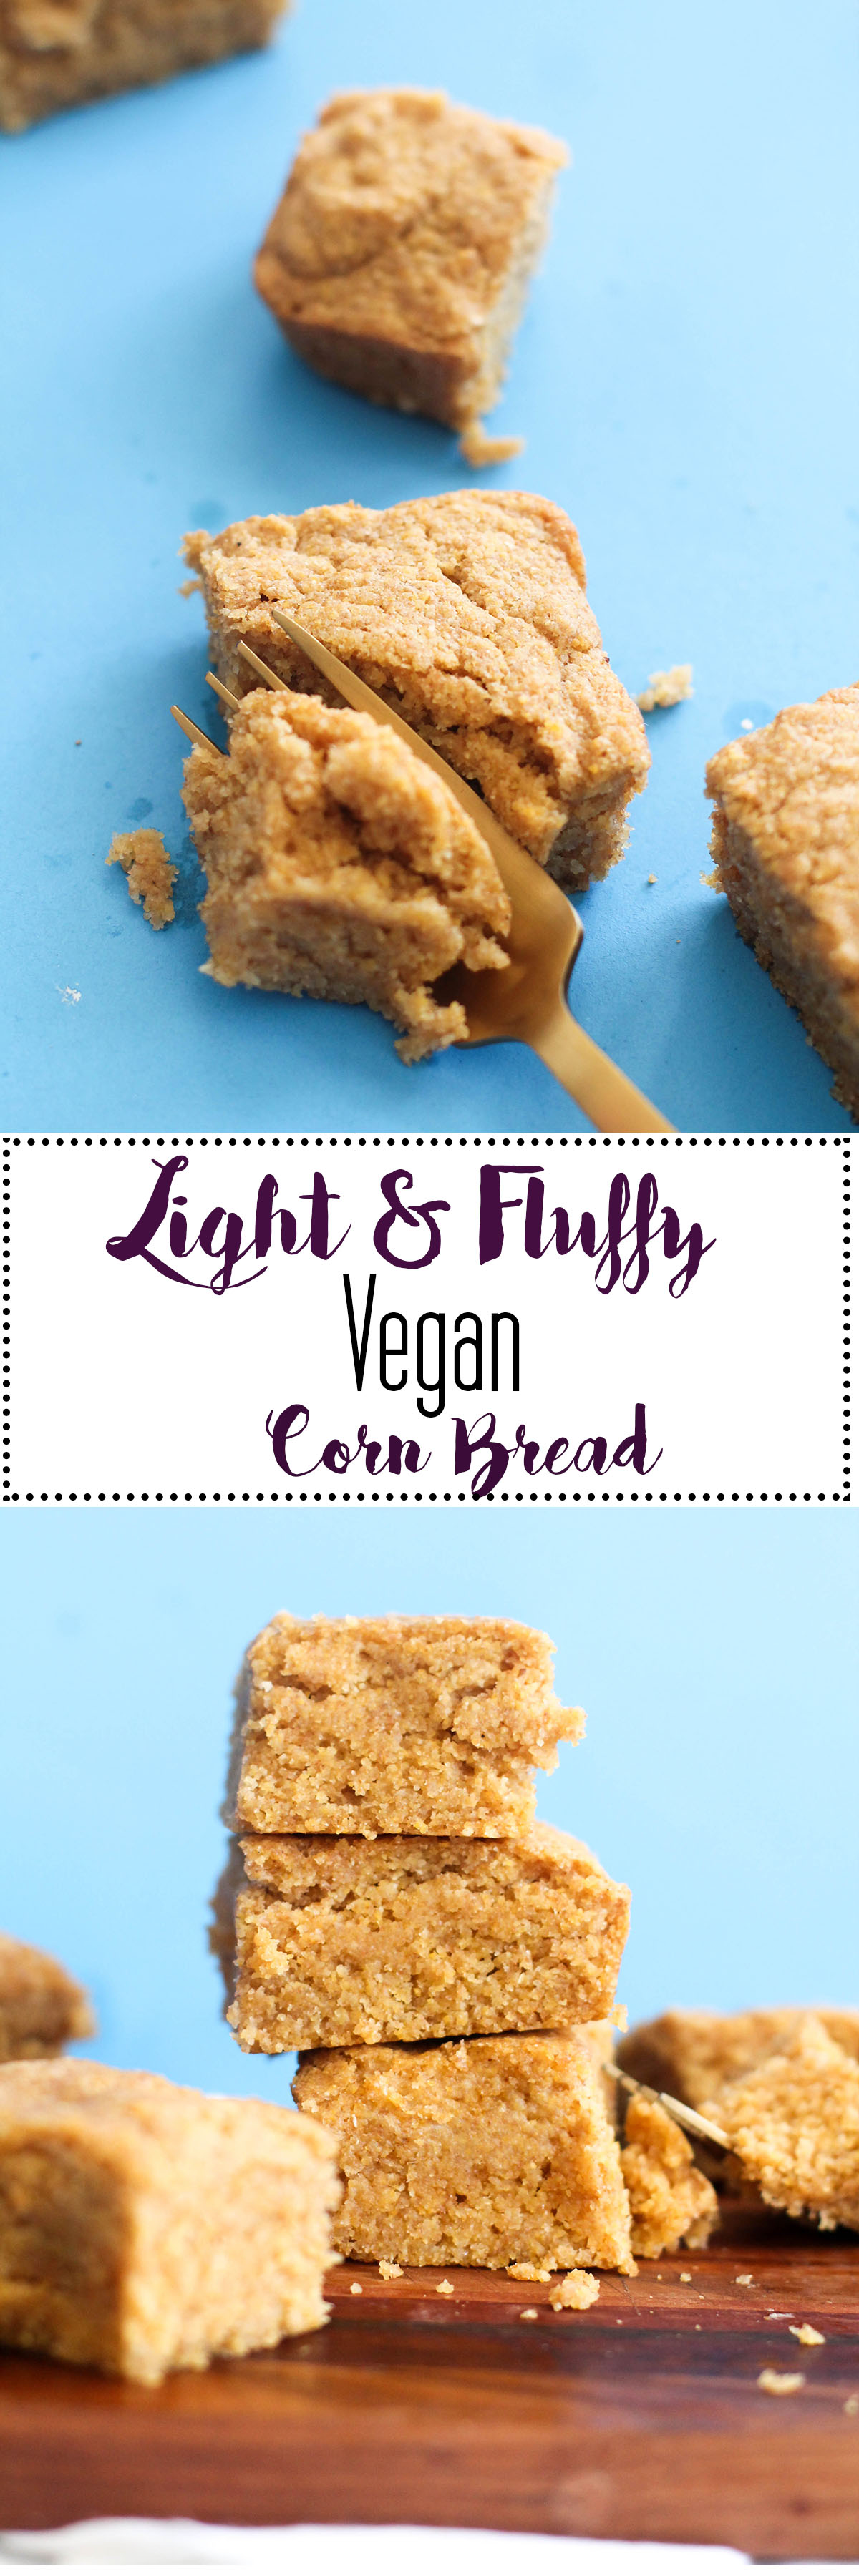 Light & fluffy corn bread that's vegan, gluten free, and refined sugar free! It's filled with flavor and a better option than store bought mixtures.